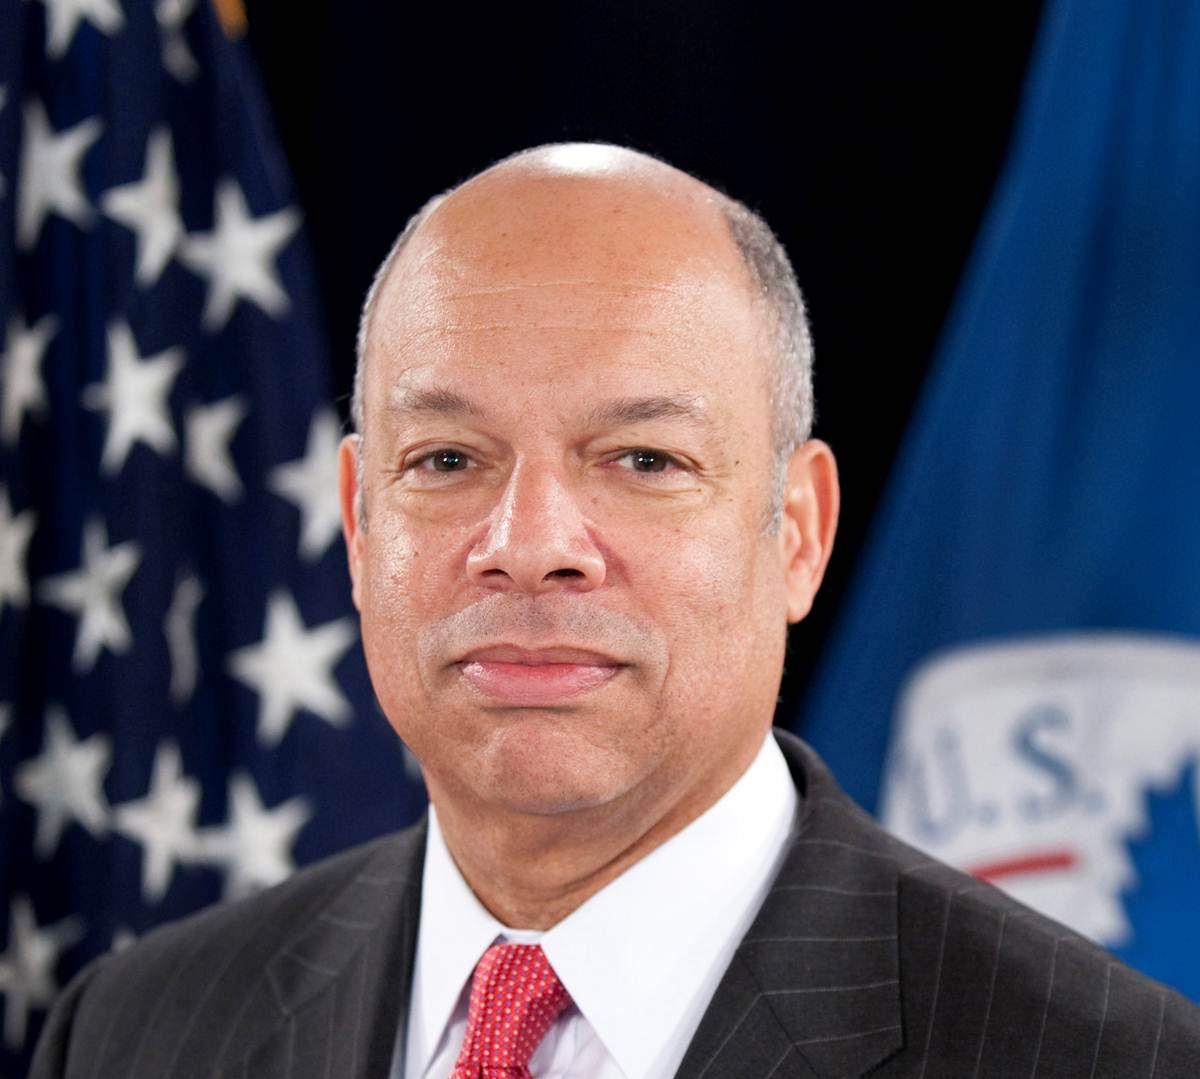 Homeland Security Secretary To Deliver Landon Lecture